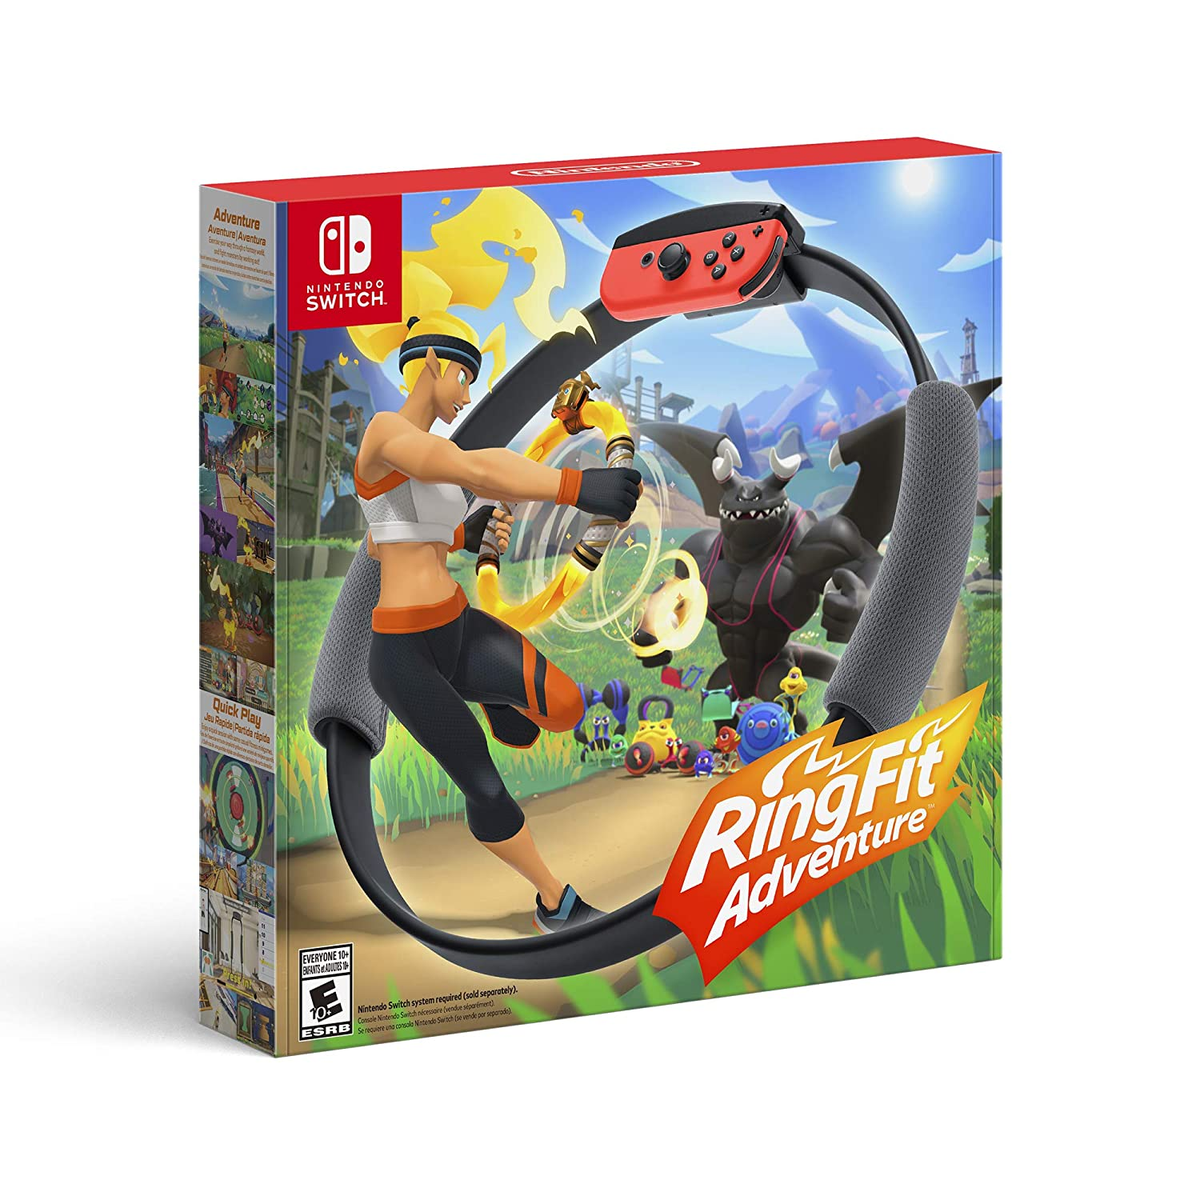 Ring Fit Adventure (Switch) is $69.88 on Amazon: 2 sells out fast